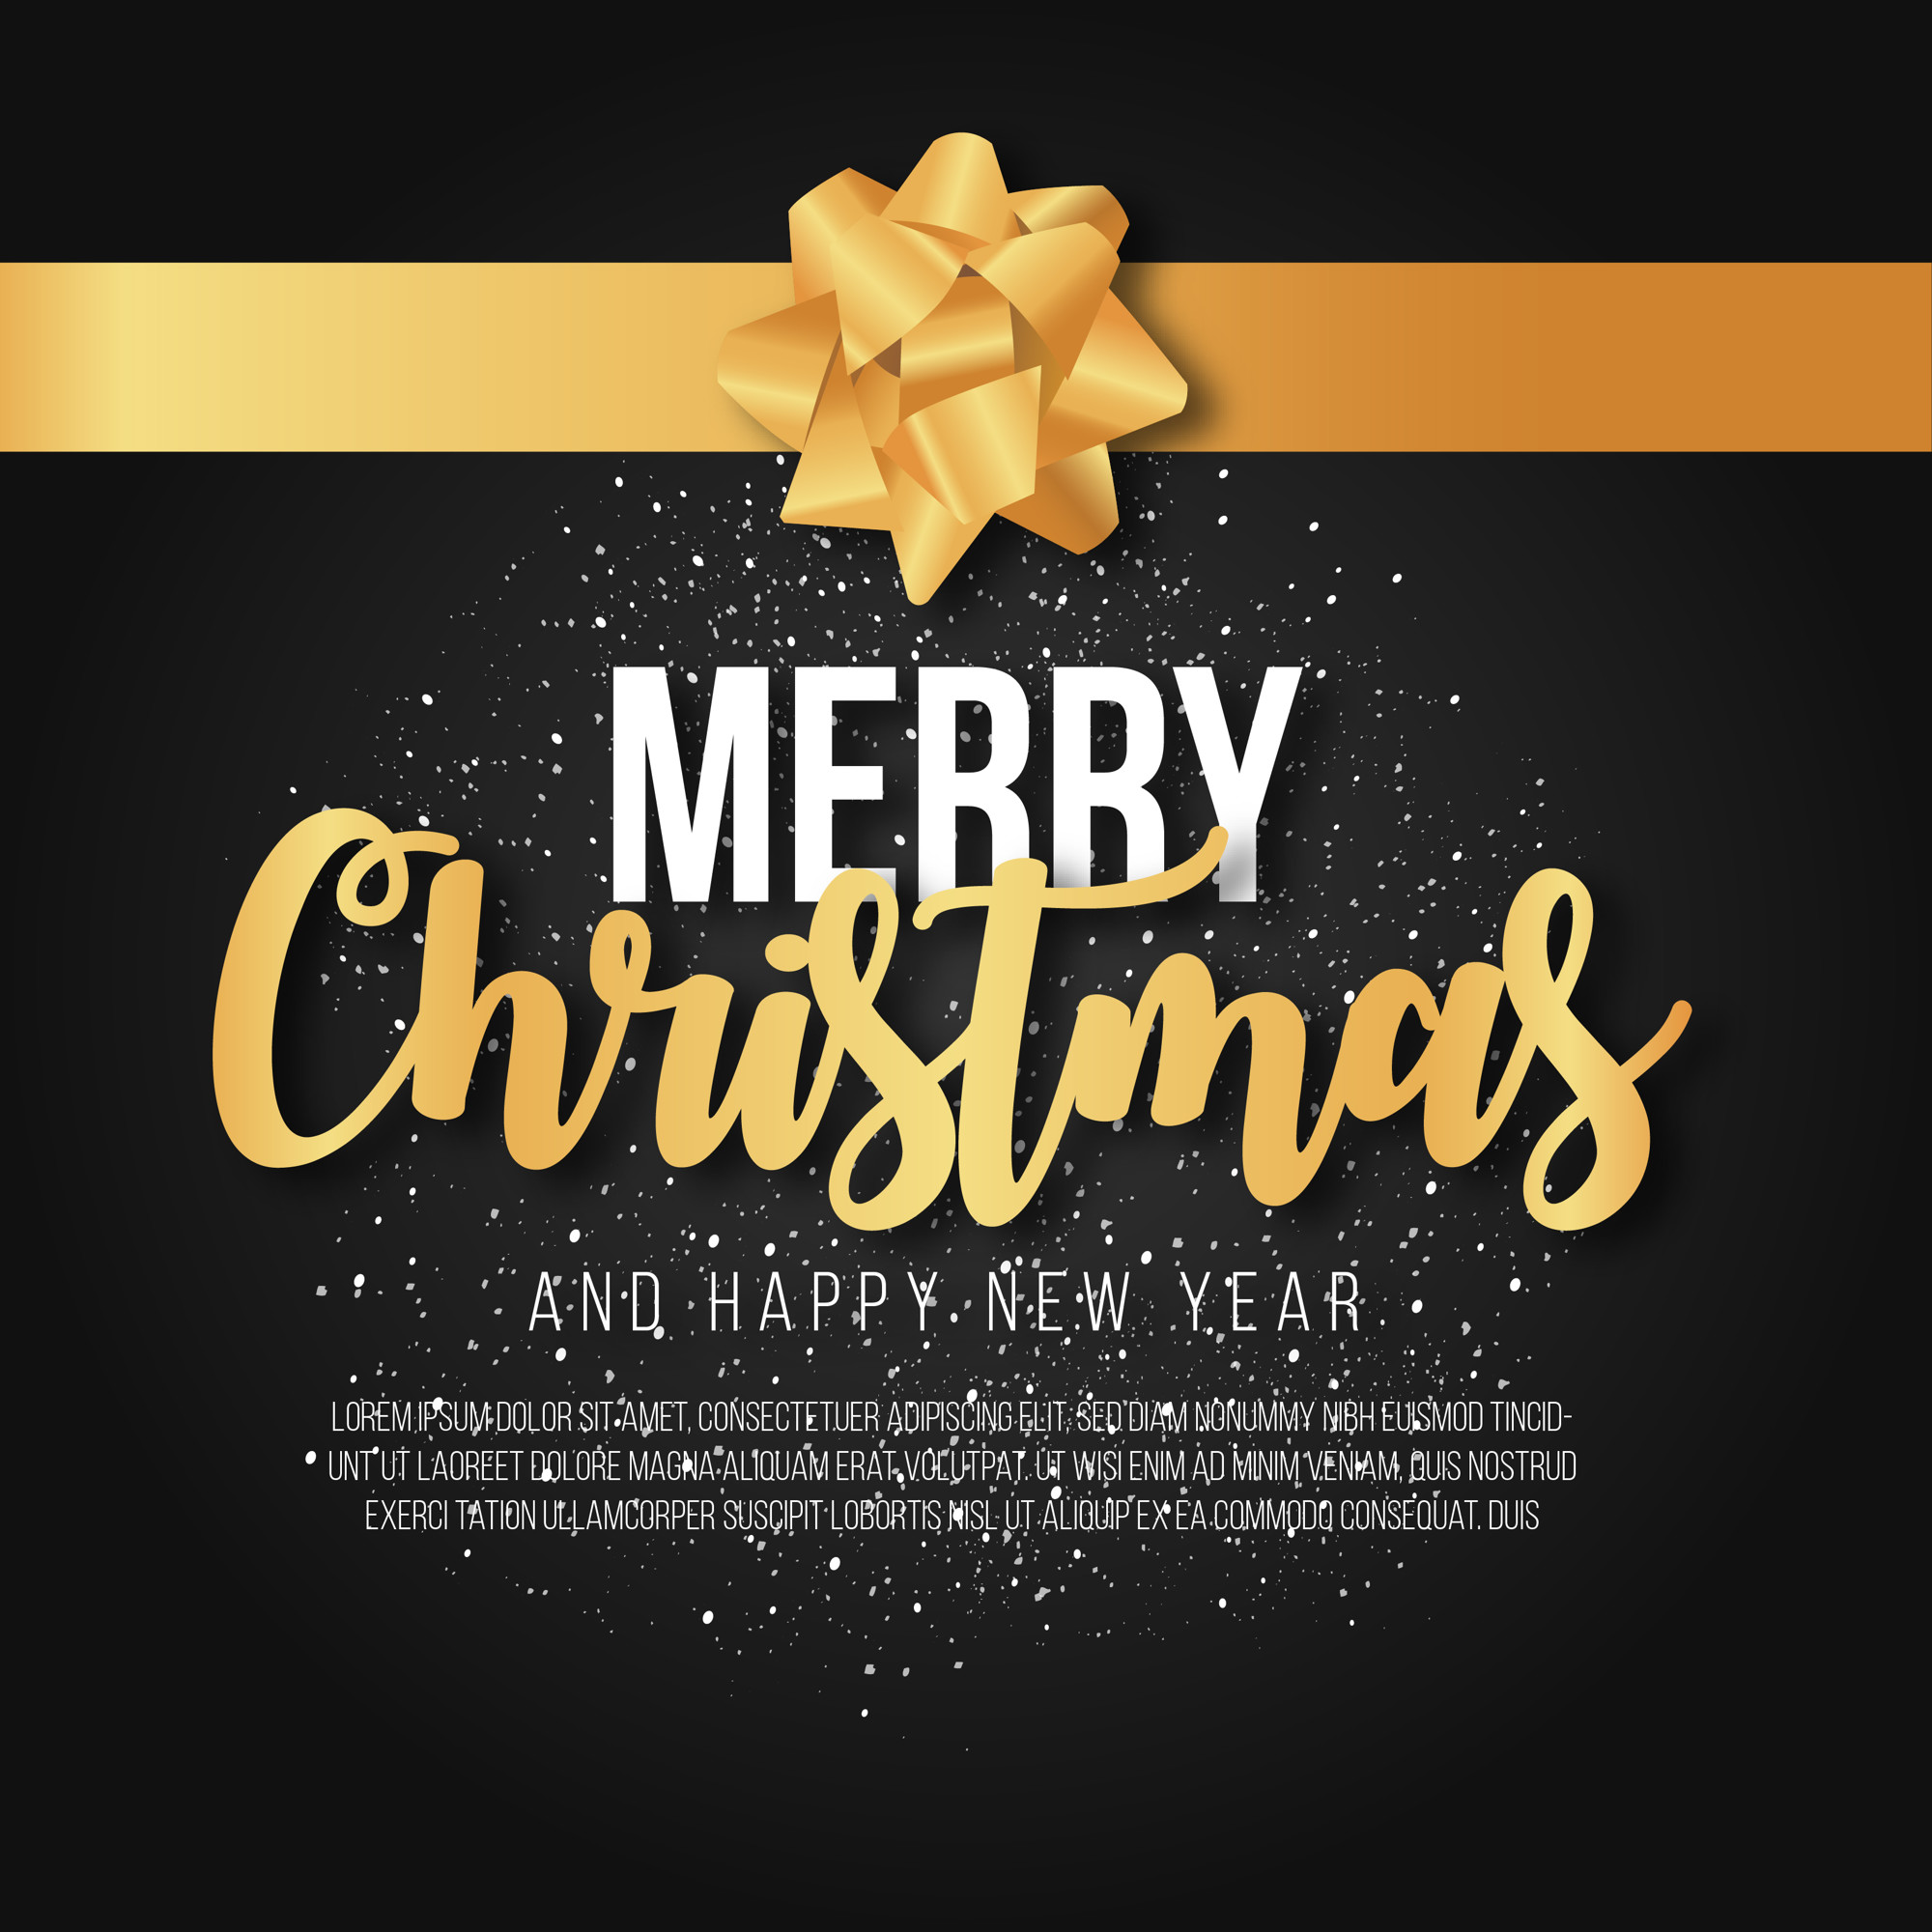 Elegant Merry Christmas Background with Golden Ribbon